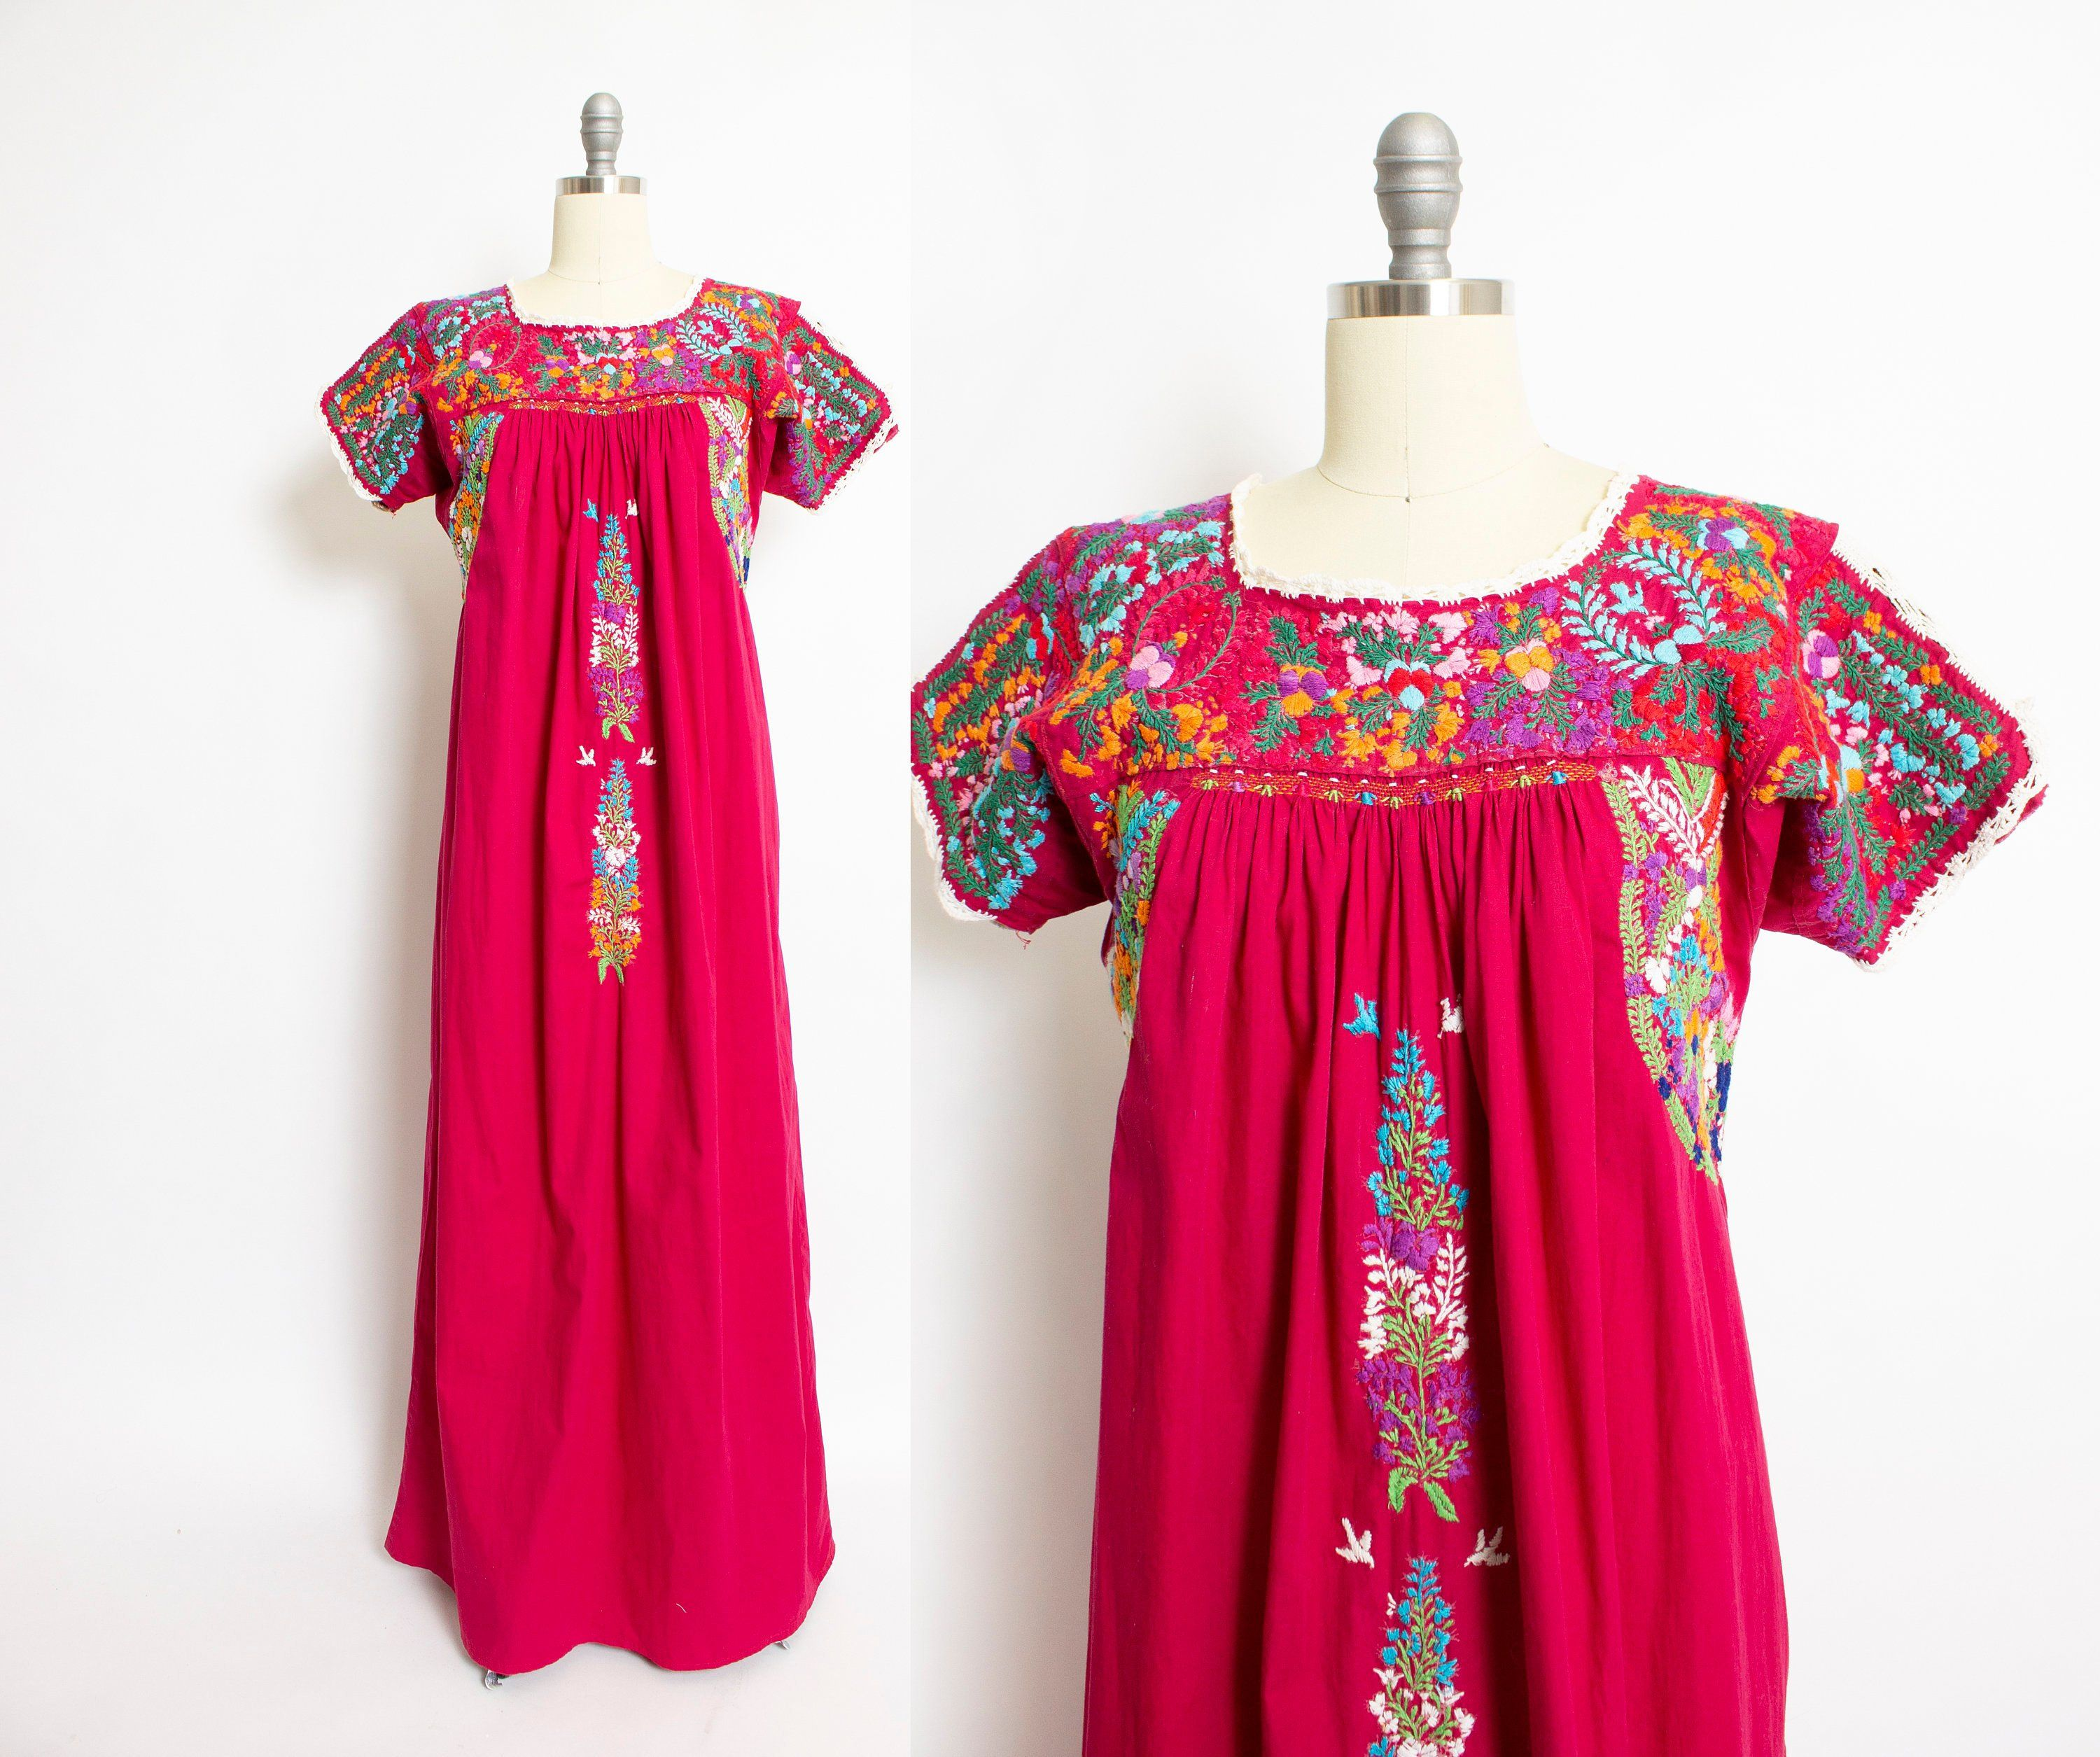 1fa54d91fa7 Vintage 1970s Dress Mexican Embroidered Cotton Floral Maxi Small / Medium